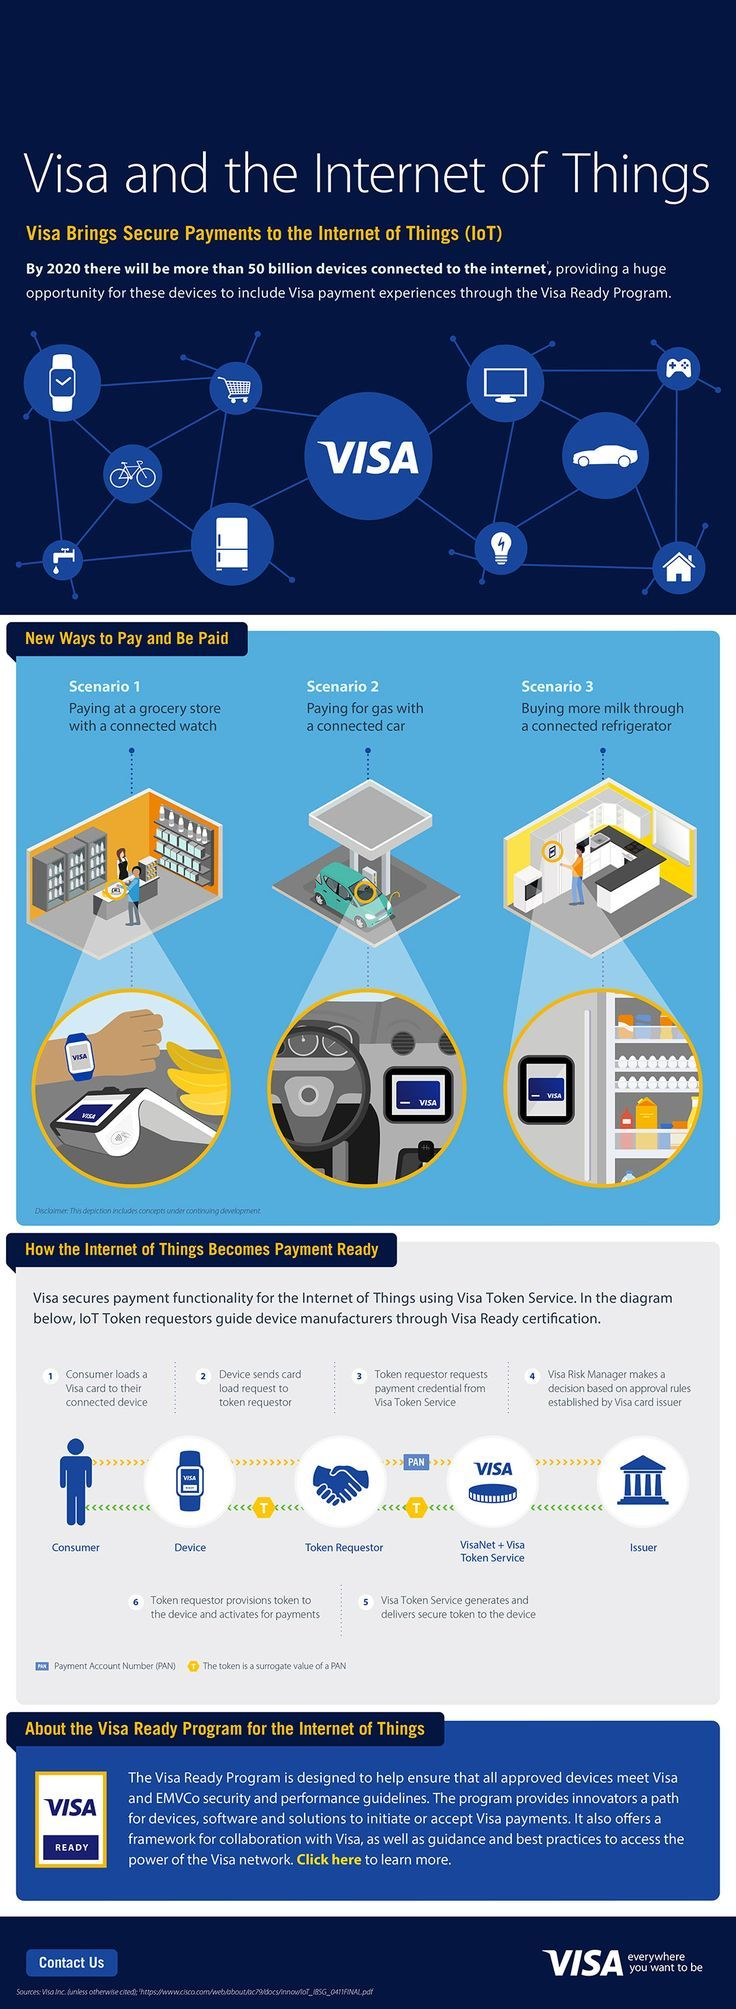 To know more log on to http://www.extentia.com (file://www.extentia.com/) #Extentia #IoT #Infographics